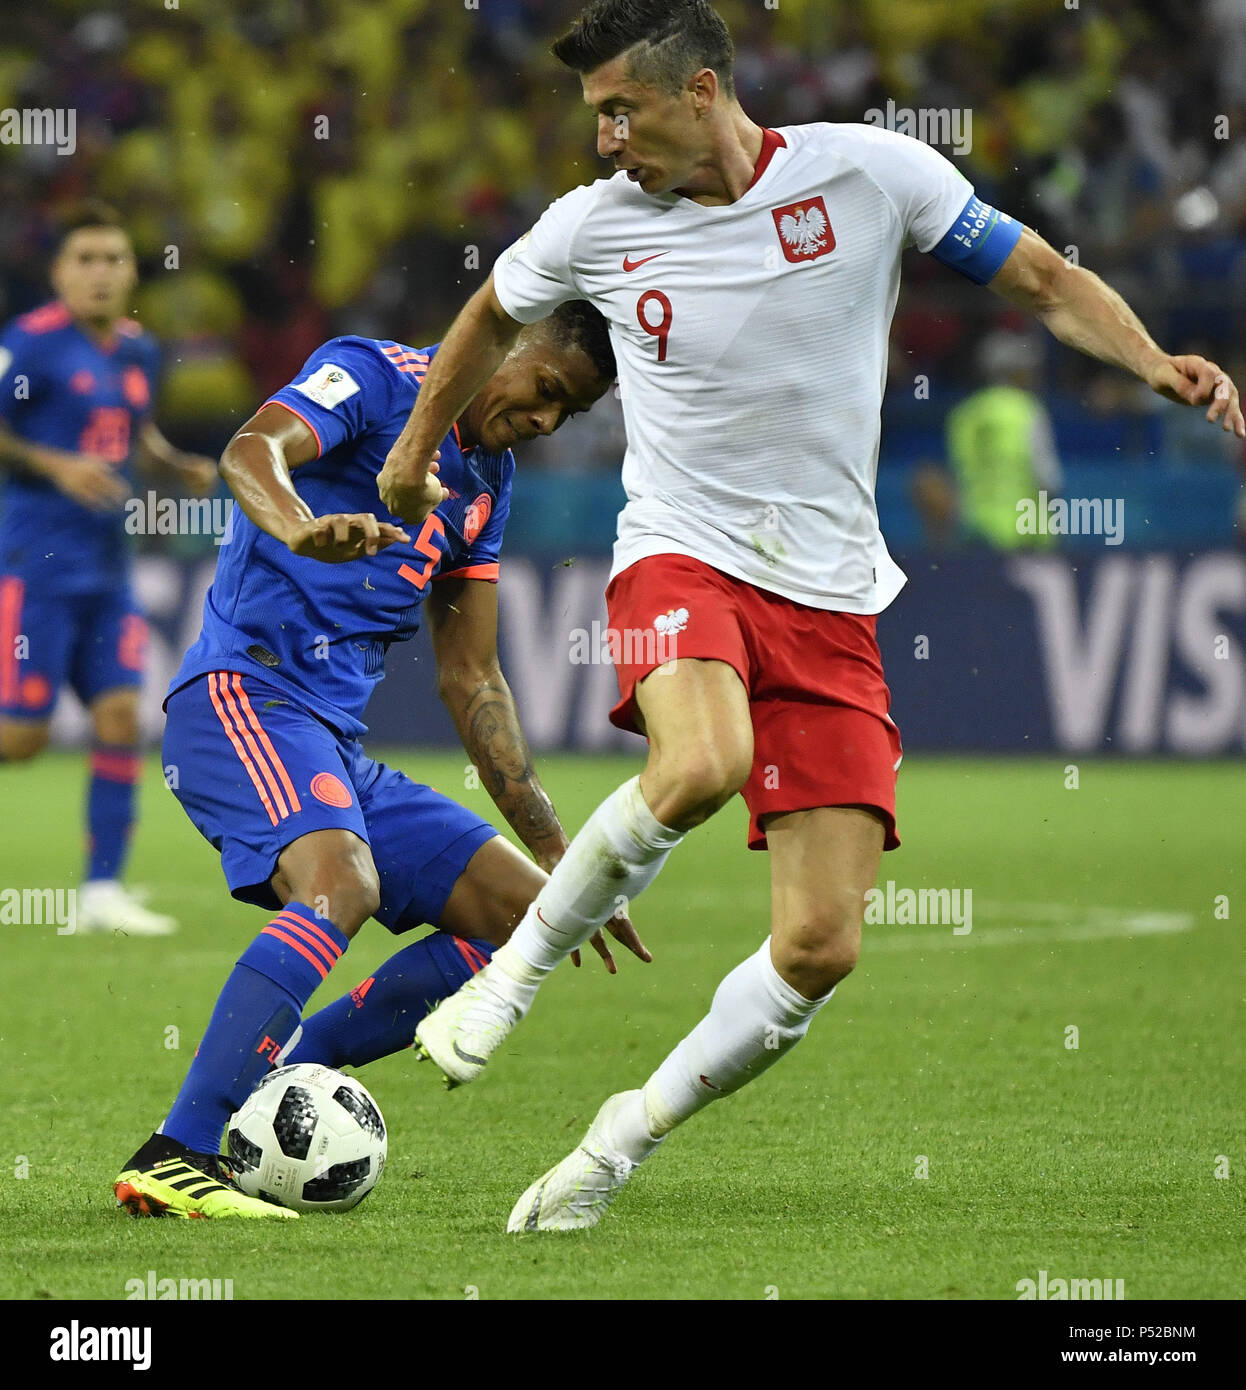 342b41c4e86 Robert Lewandowski (R) of Poland vies with Wilmar Barrios of Colombia during  the 2018 FIFA World Cup Group H match between Poland and Colombia in Kazan